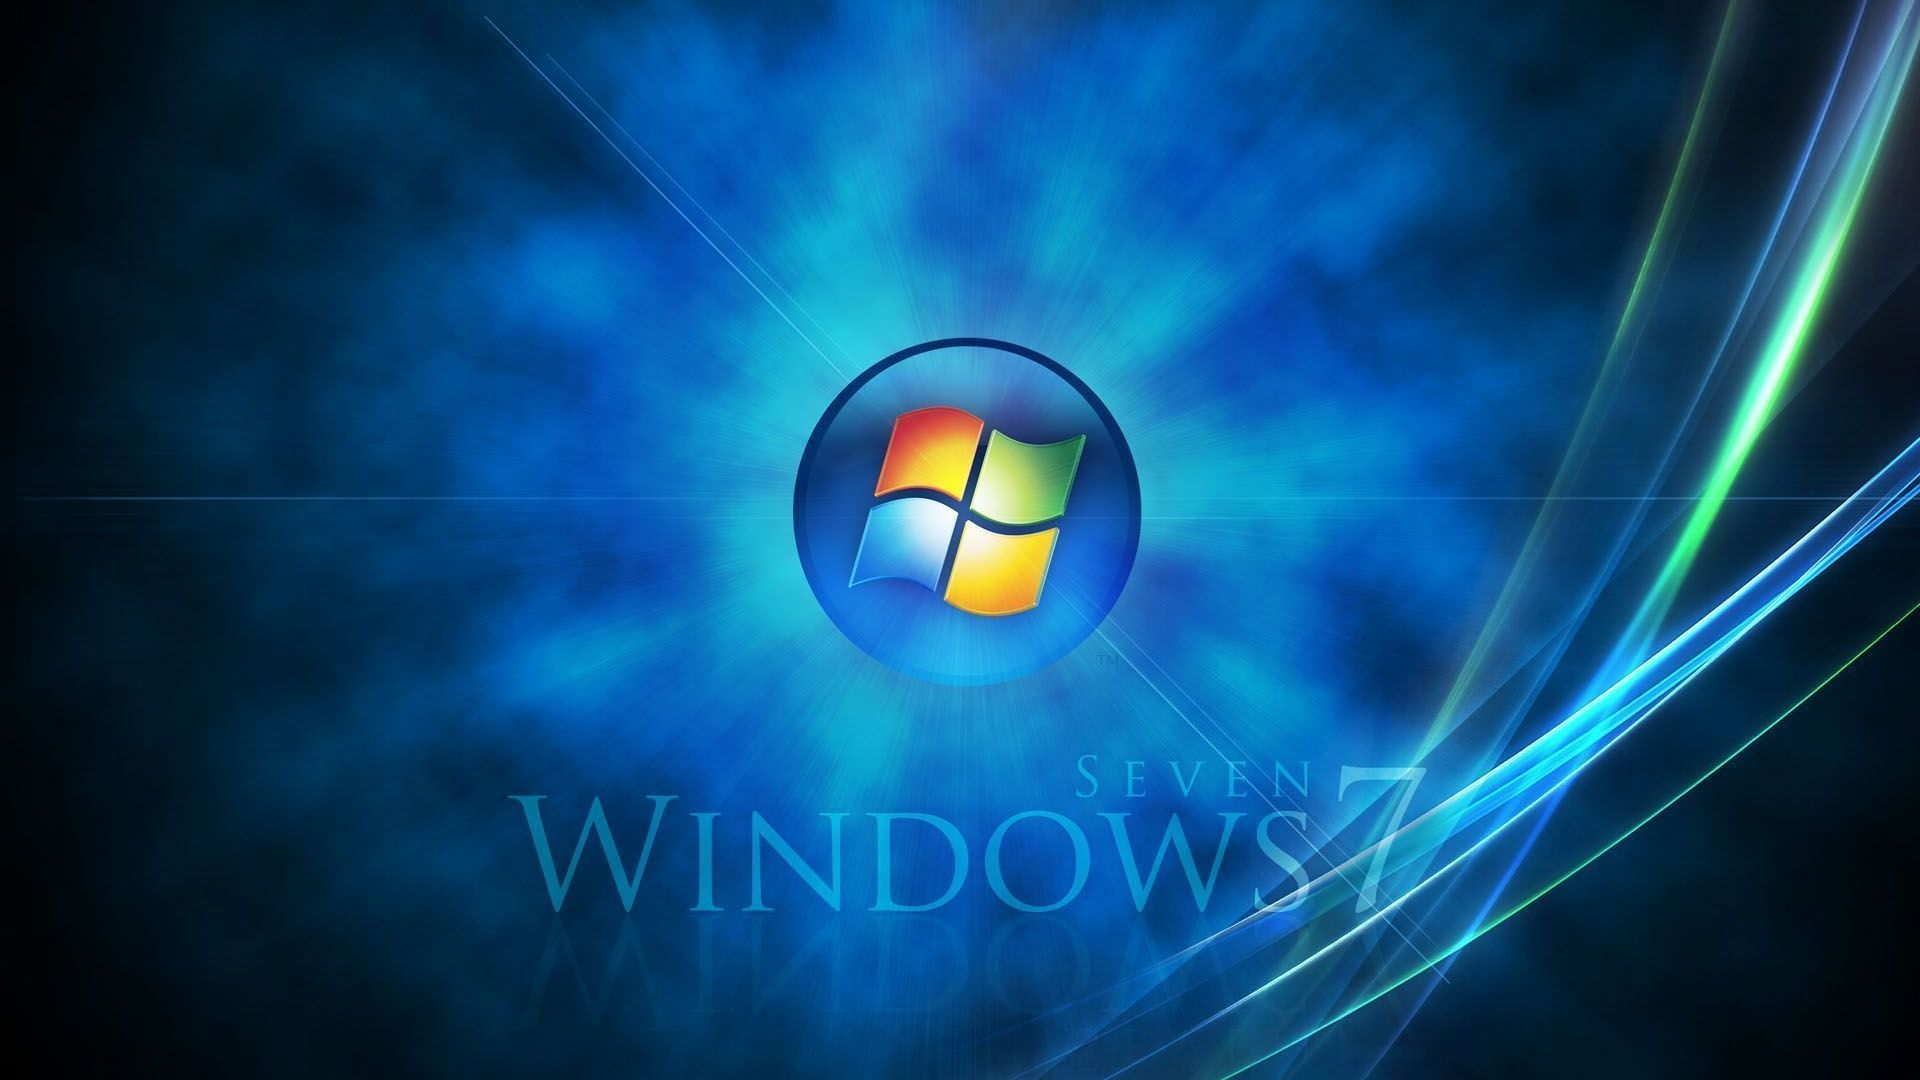 Windows Hd Wallpapers P 1920x1080